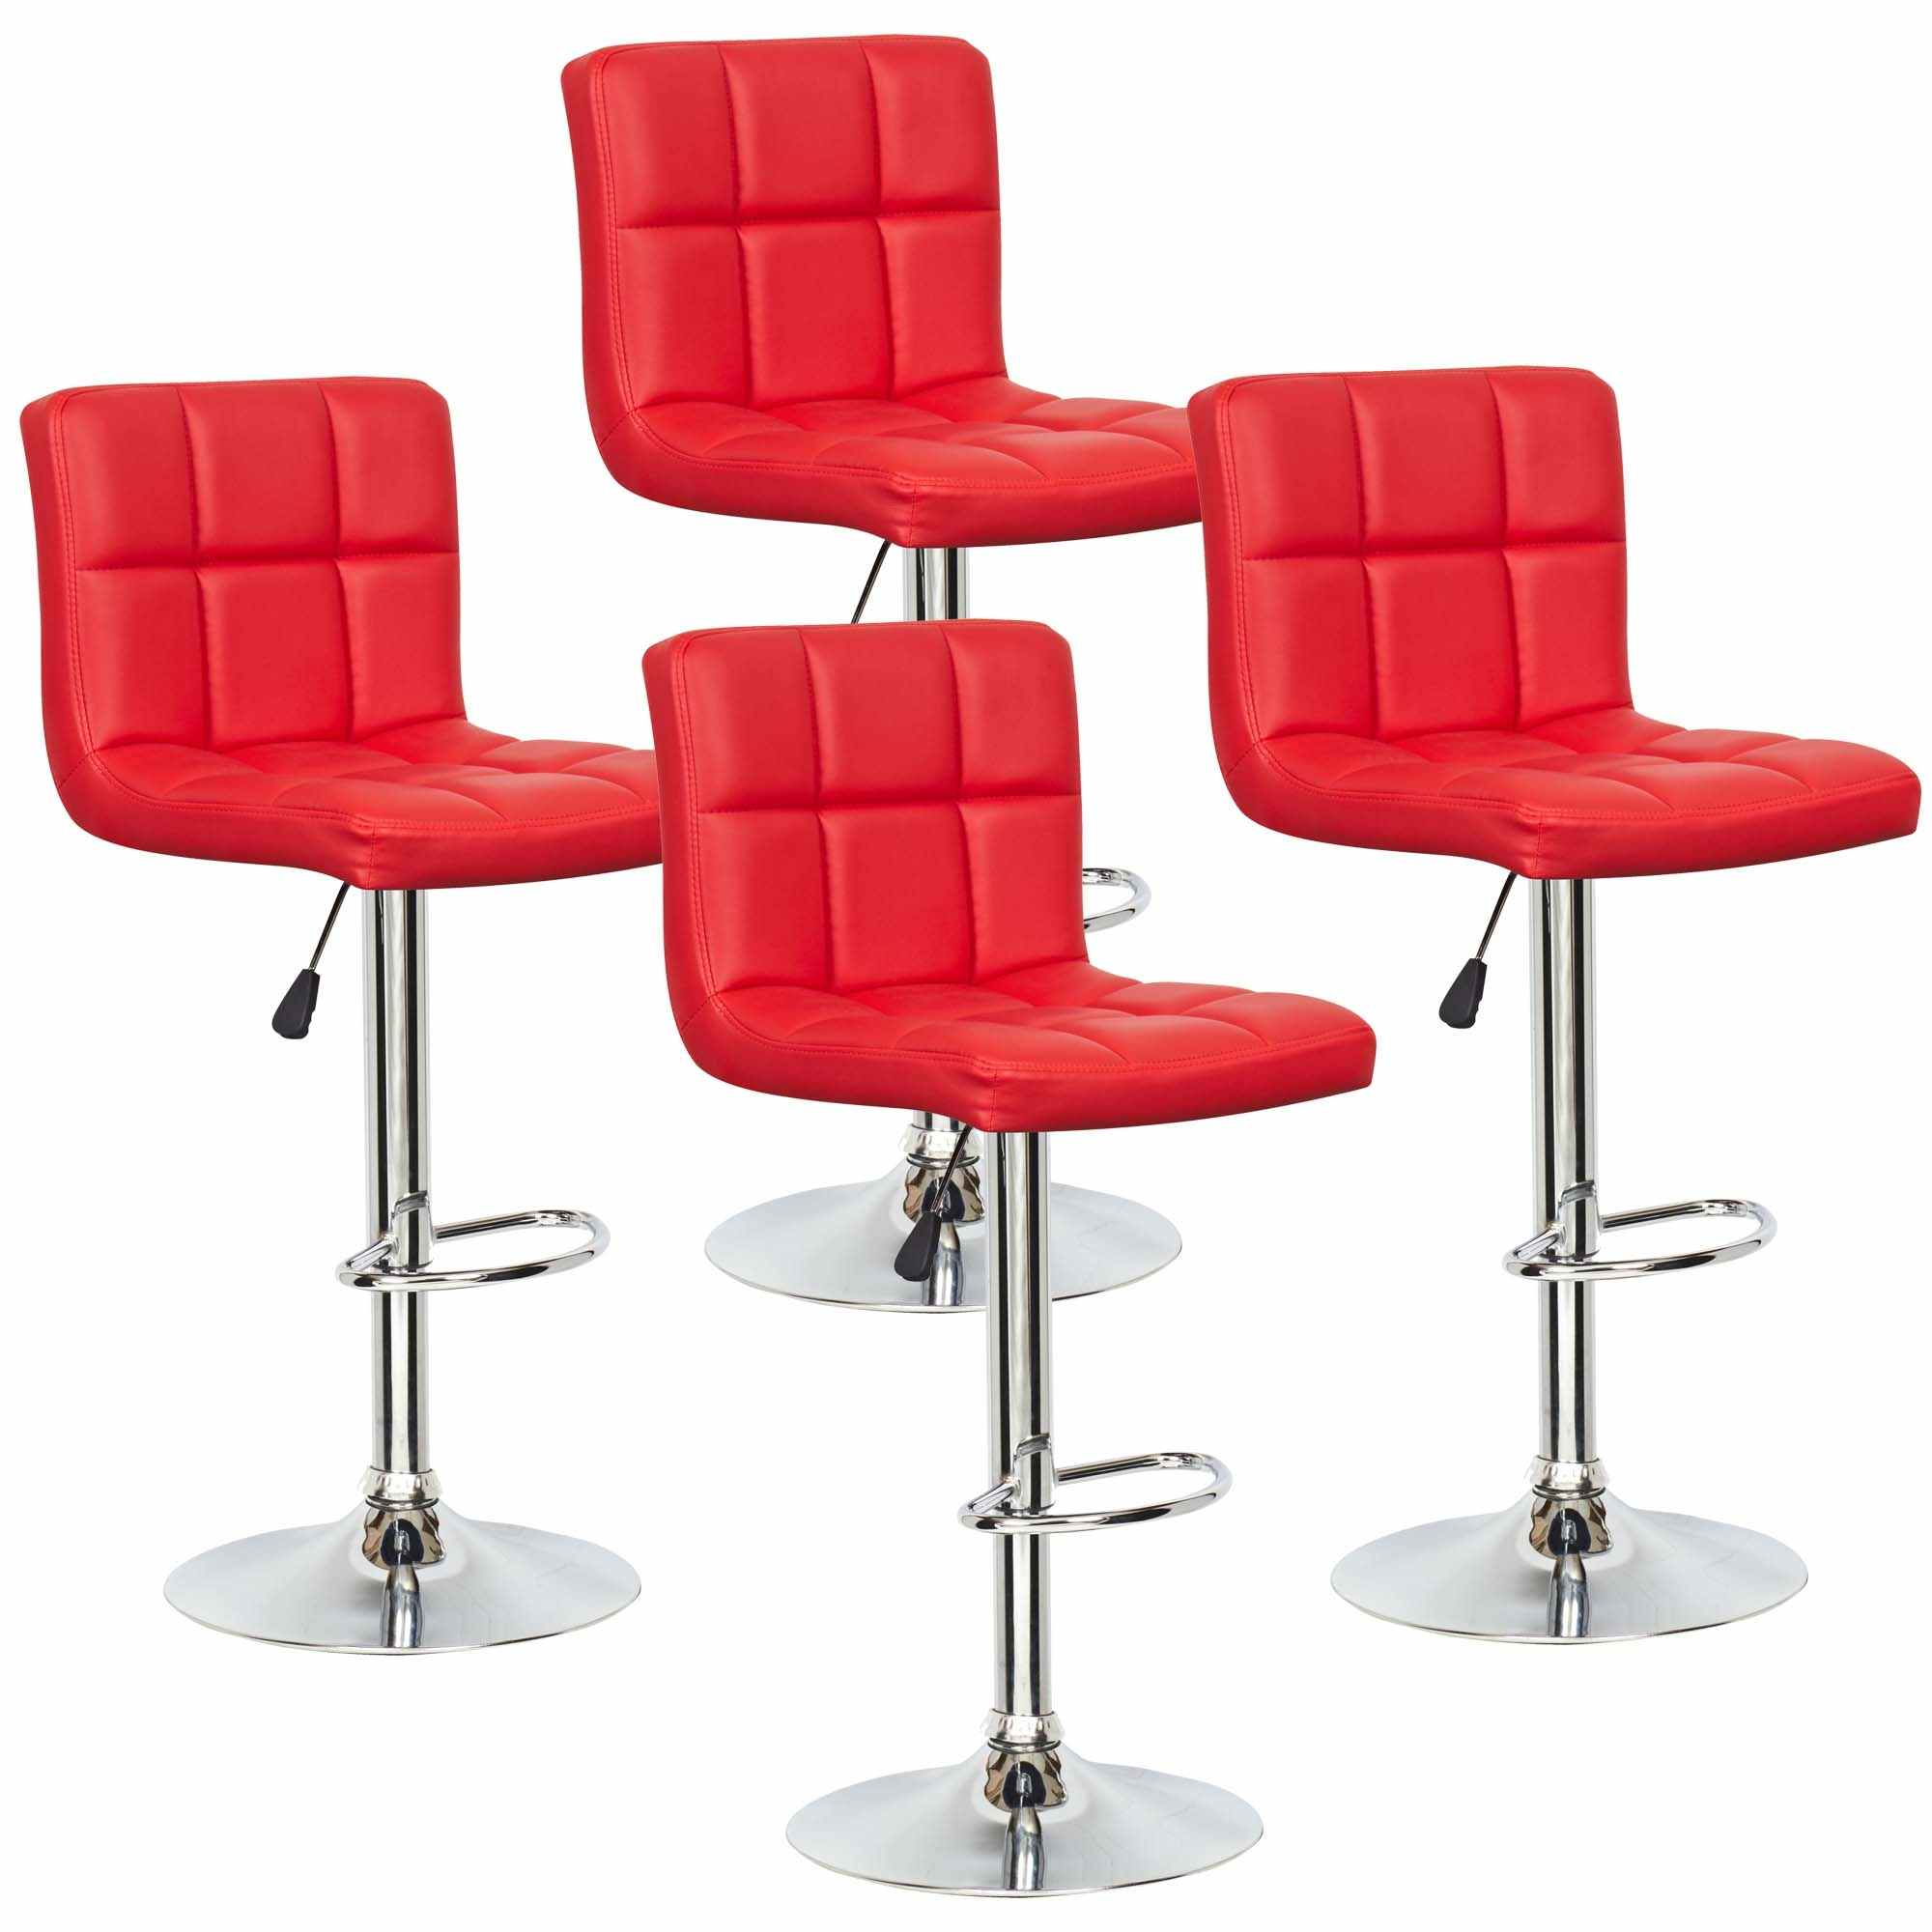 Deco in paris lot de 4 tabourets de bar rouge scalo tab for Chaise rouge